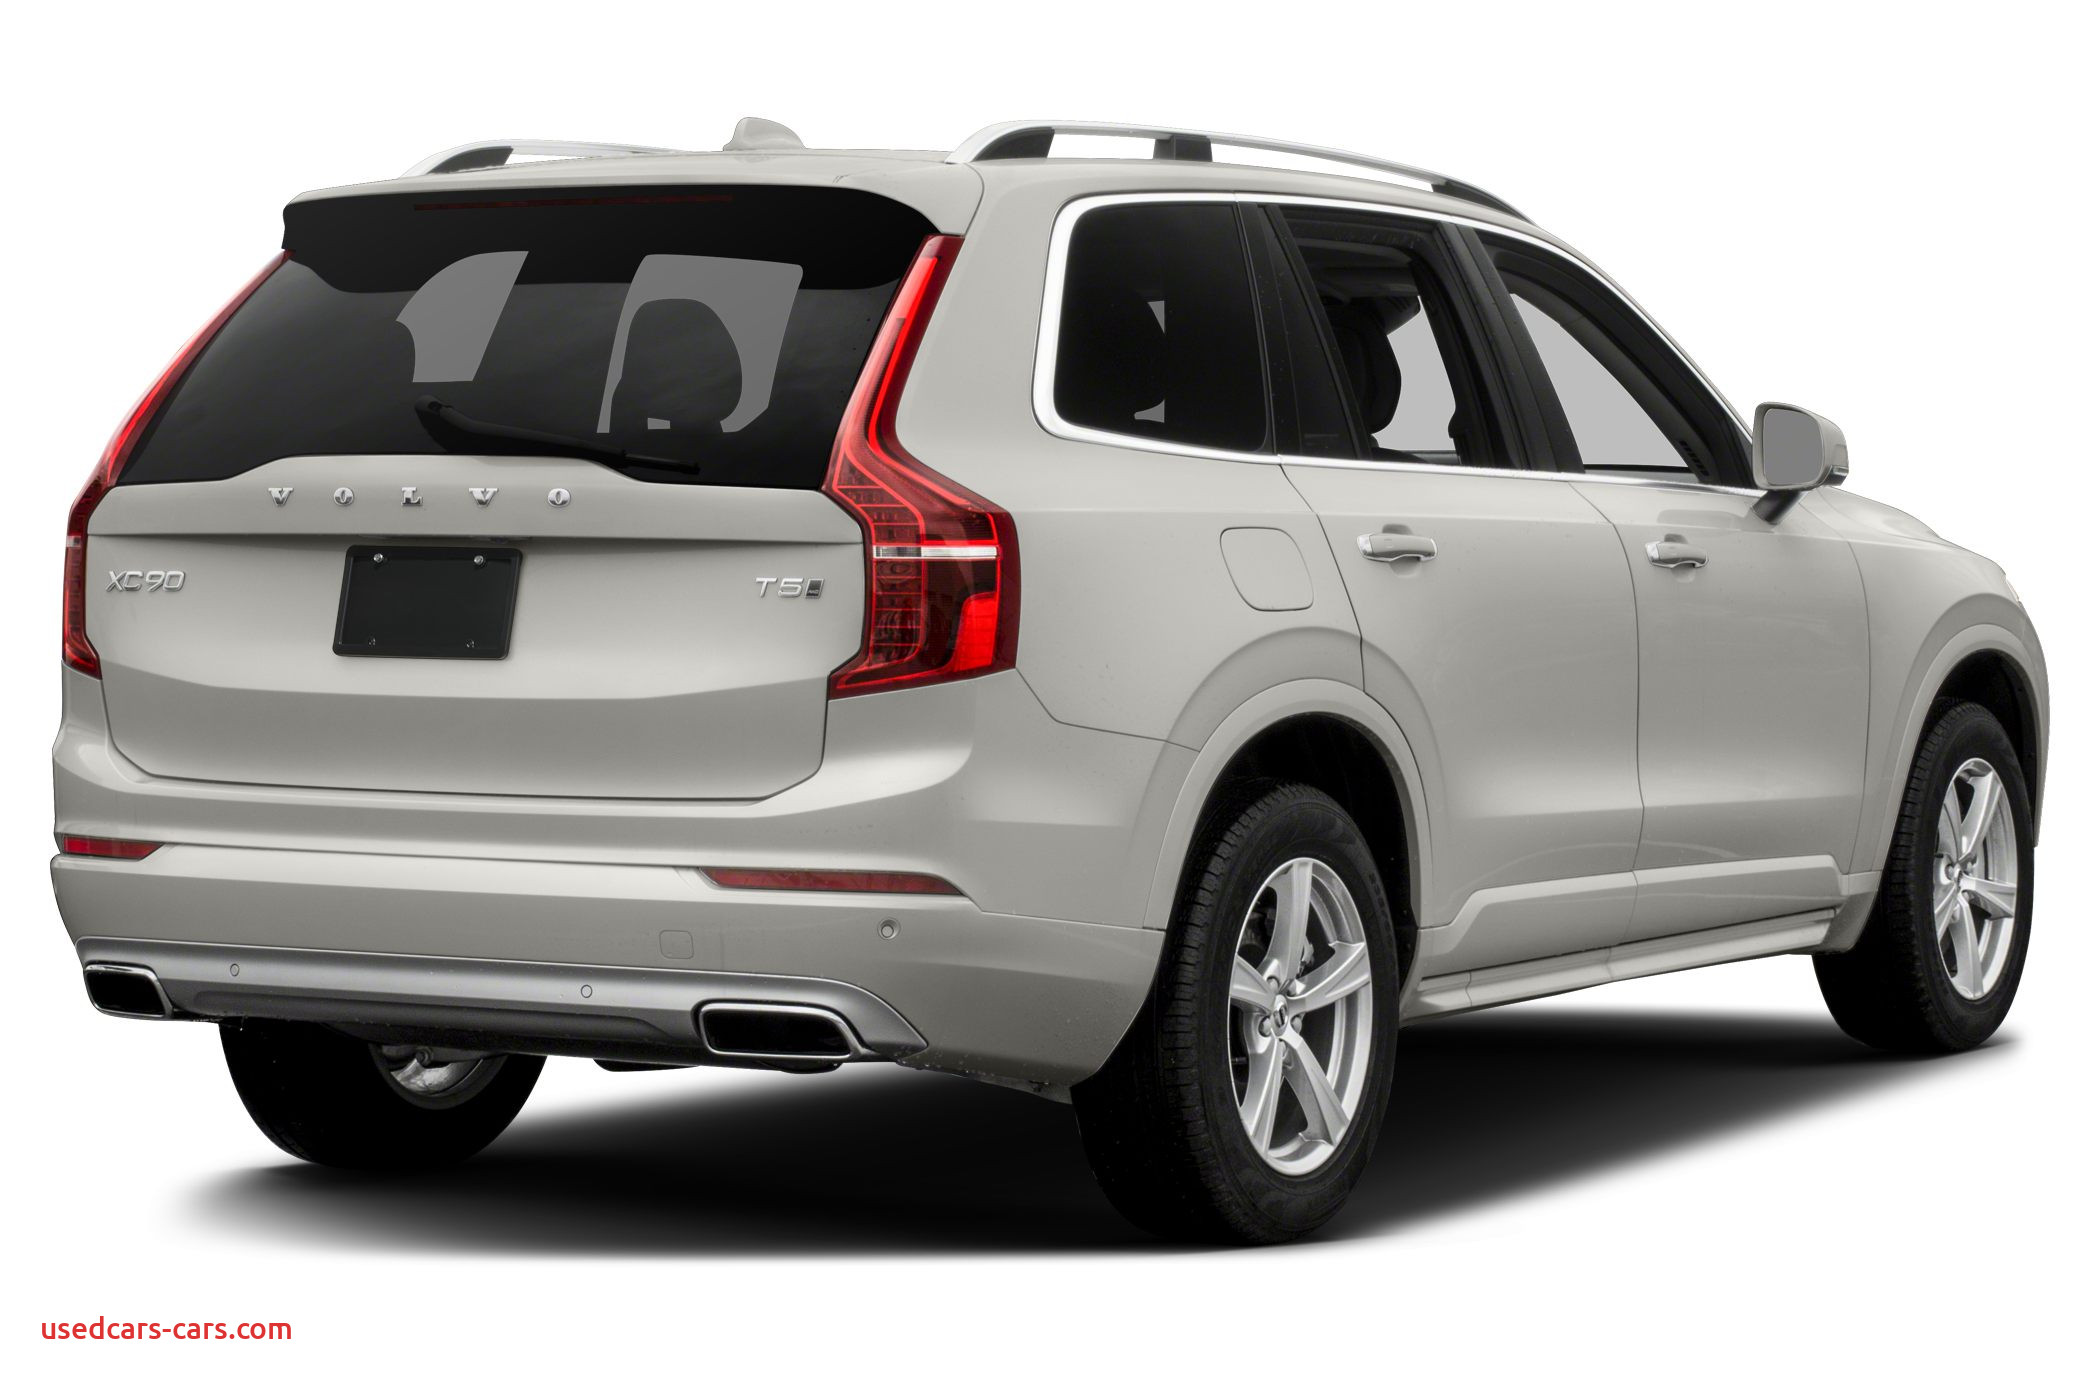 Xc90 Price Inspirational 2017 Volvo Xc90 Price Photos Reviews Features